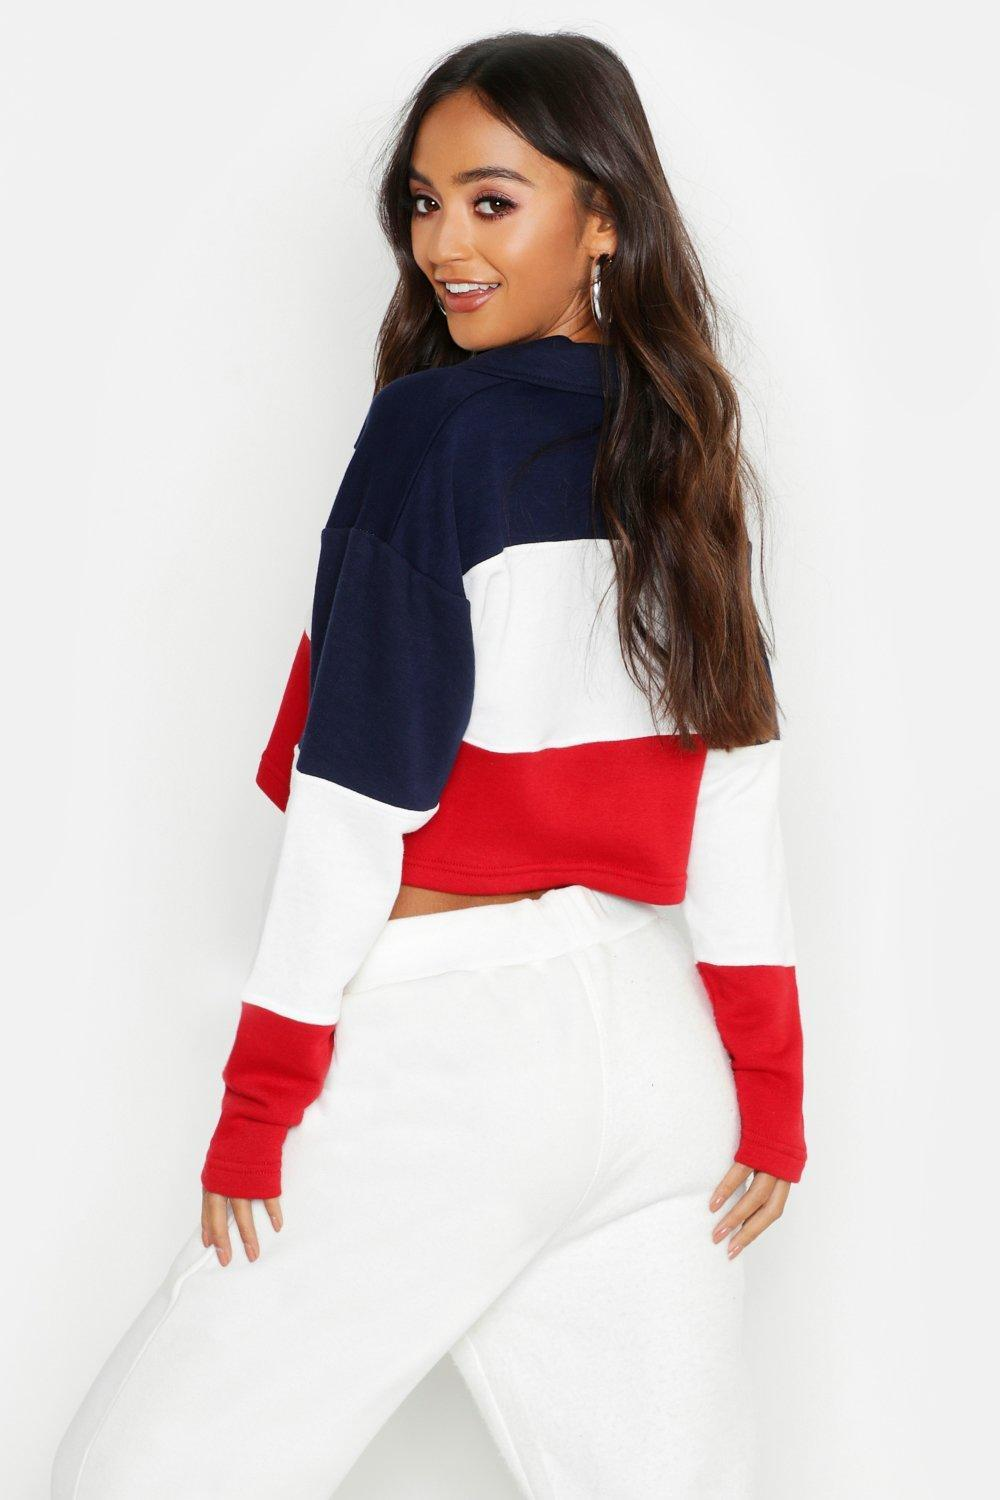 961af7717a17f Boohoo - Red Petite Colour Block Rugby Crop Sweat Top - Lyst. View  fullscreen